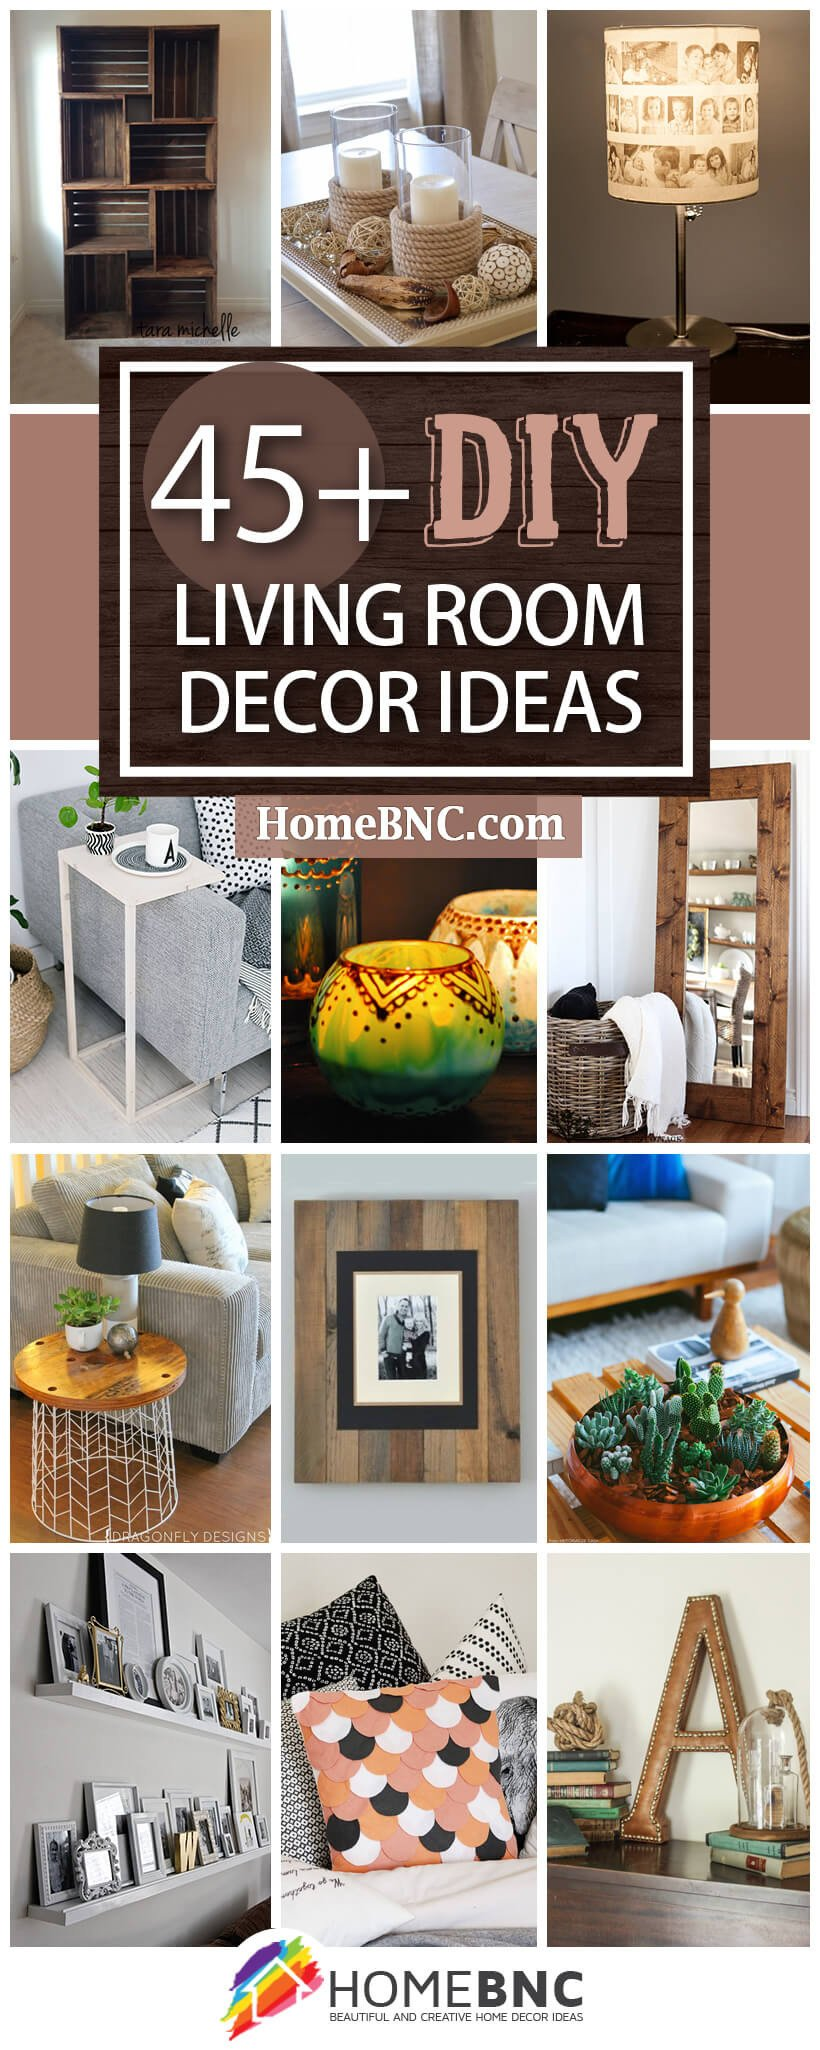 Small Living Room Diy Ideas Lovely 45 Best Diy Living Room Decorating Ideas and Designs for 2019